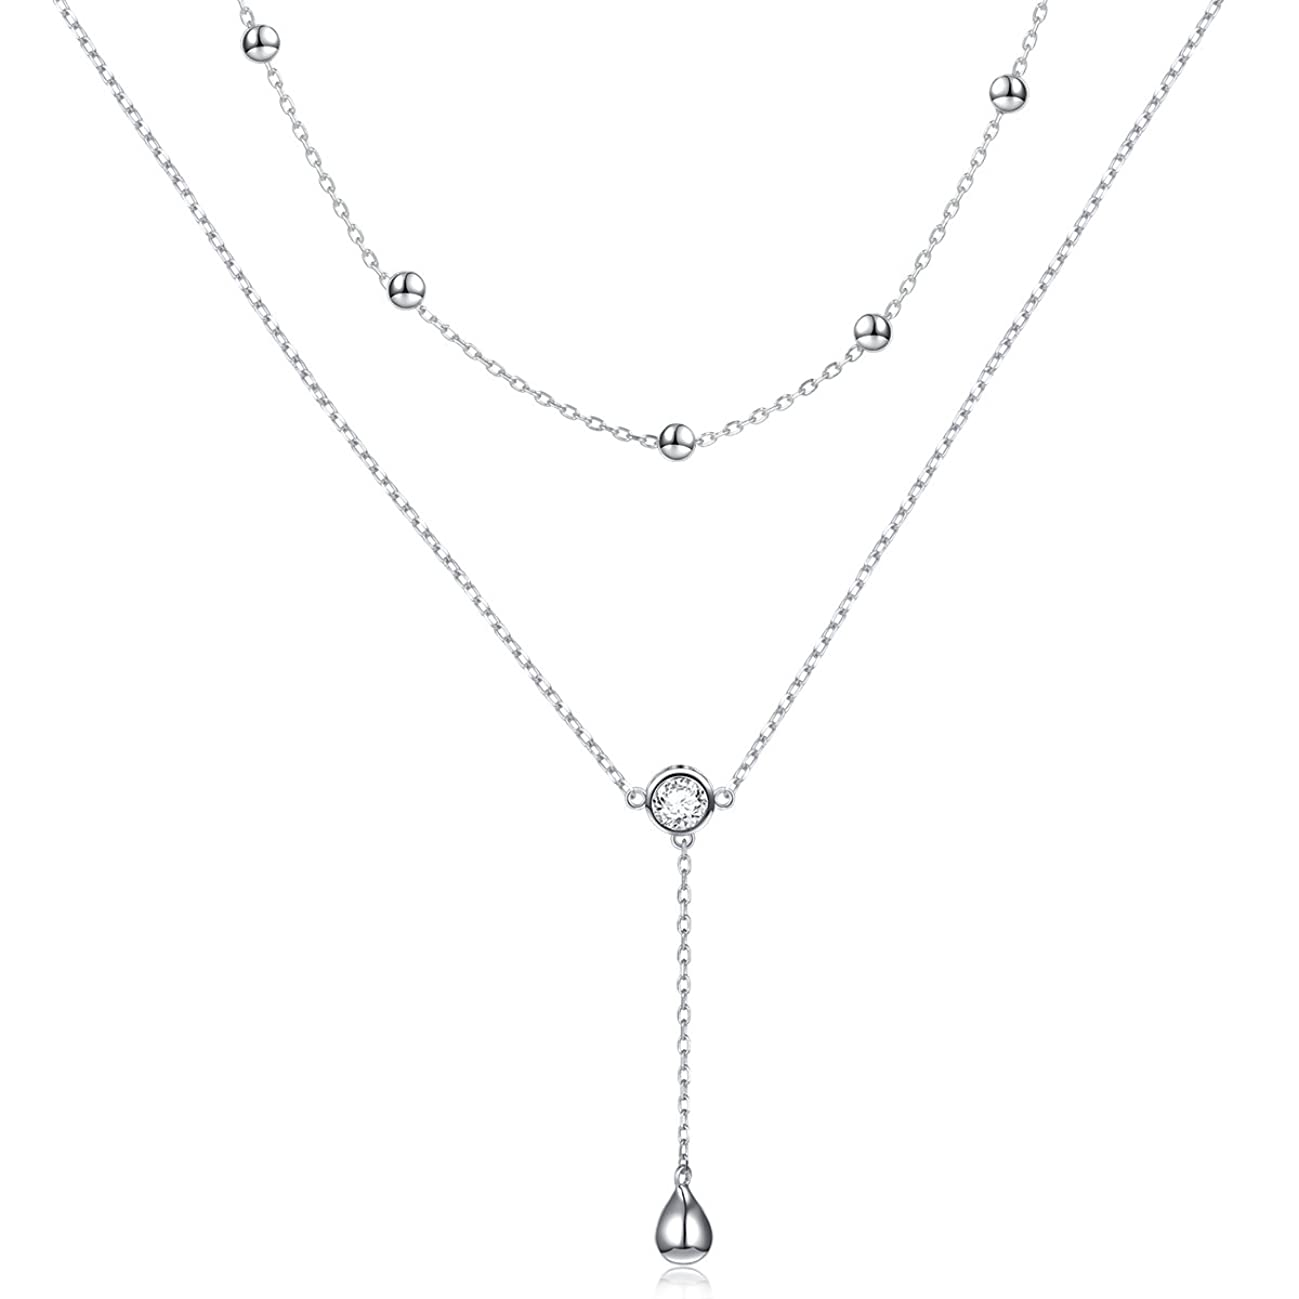 FLYOW Layered Necklace S925 Sterling Silver Teardrop Double Choker Y Lariat Necklace Gifts for Women Girls